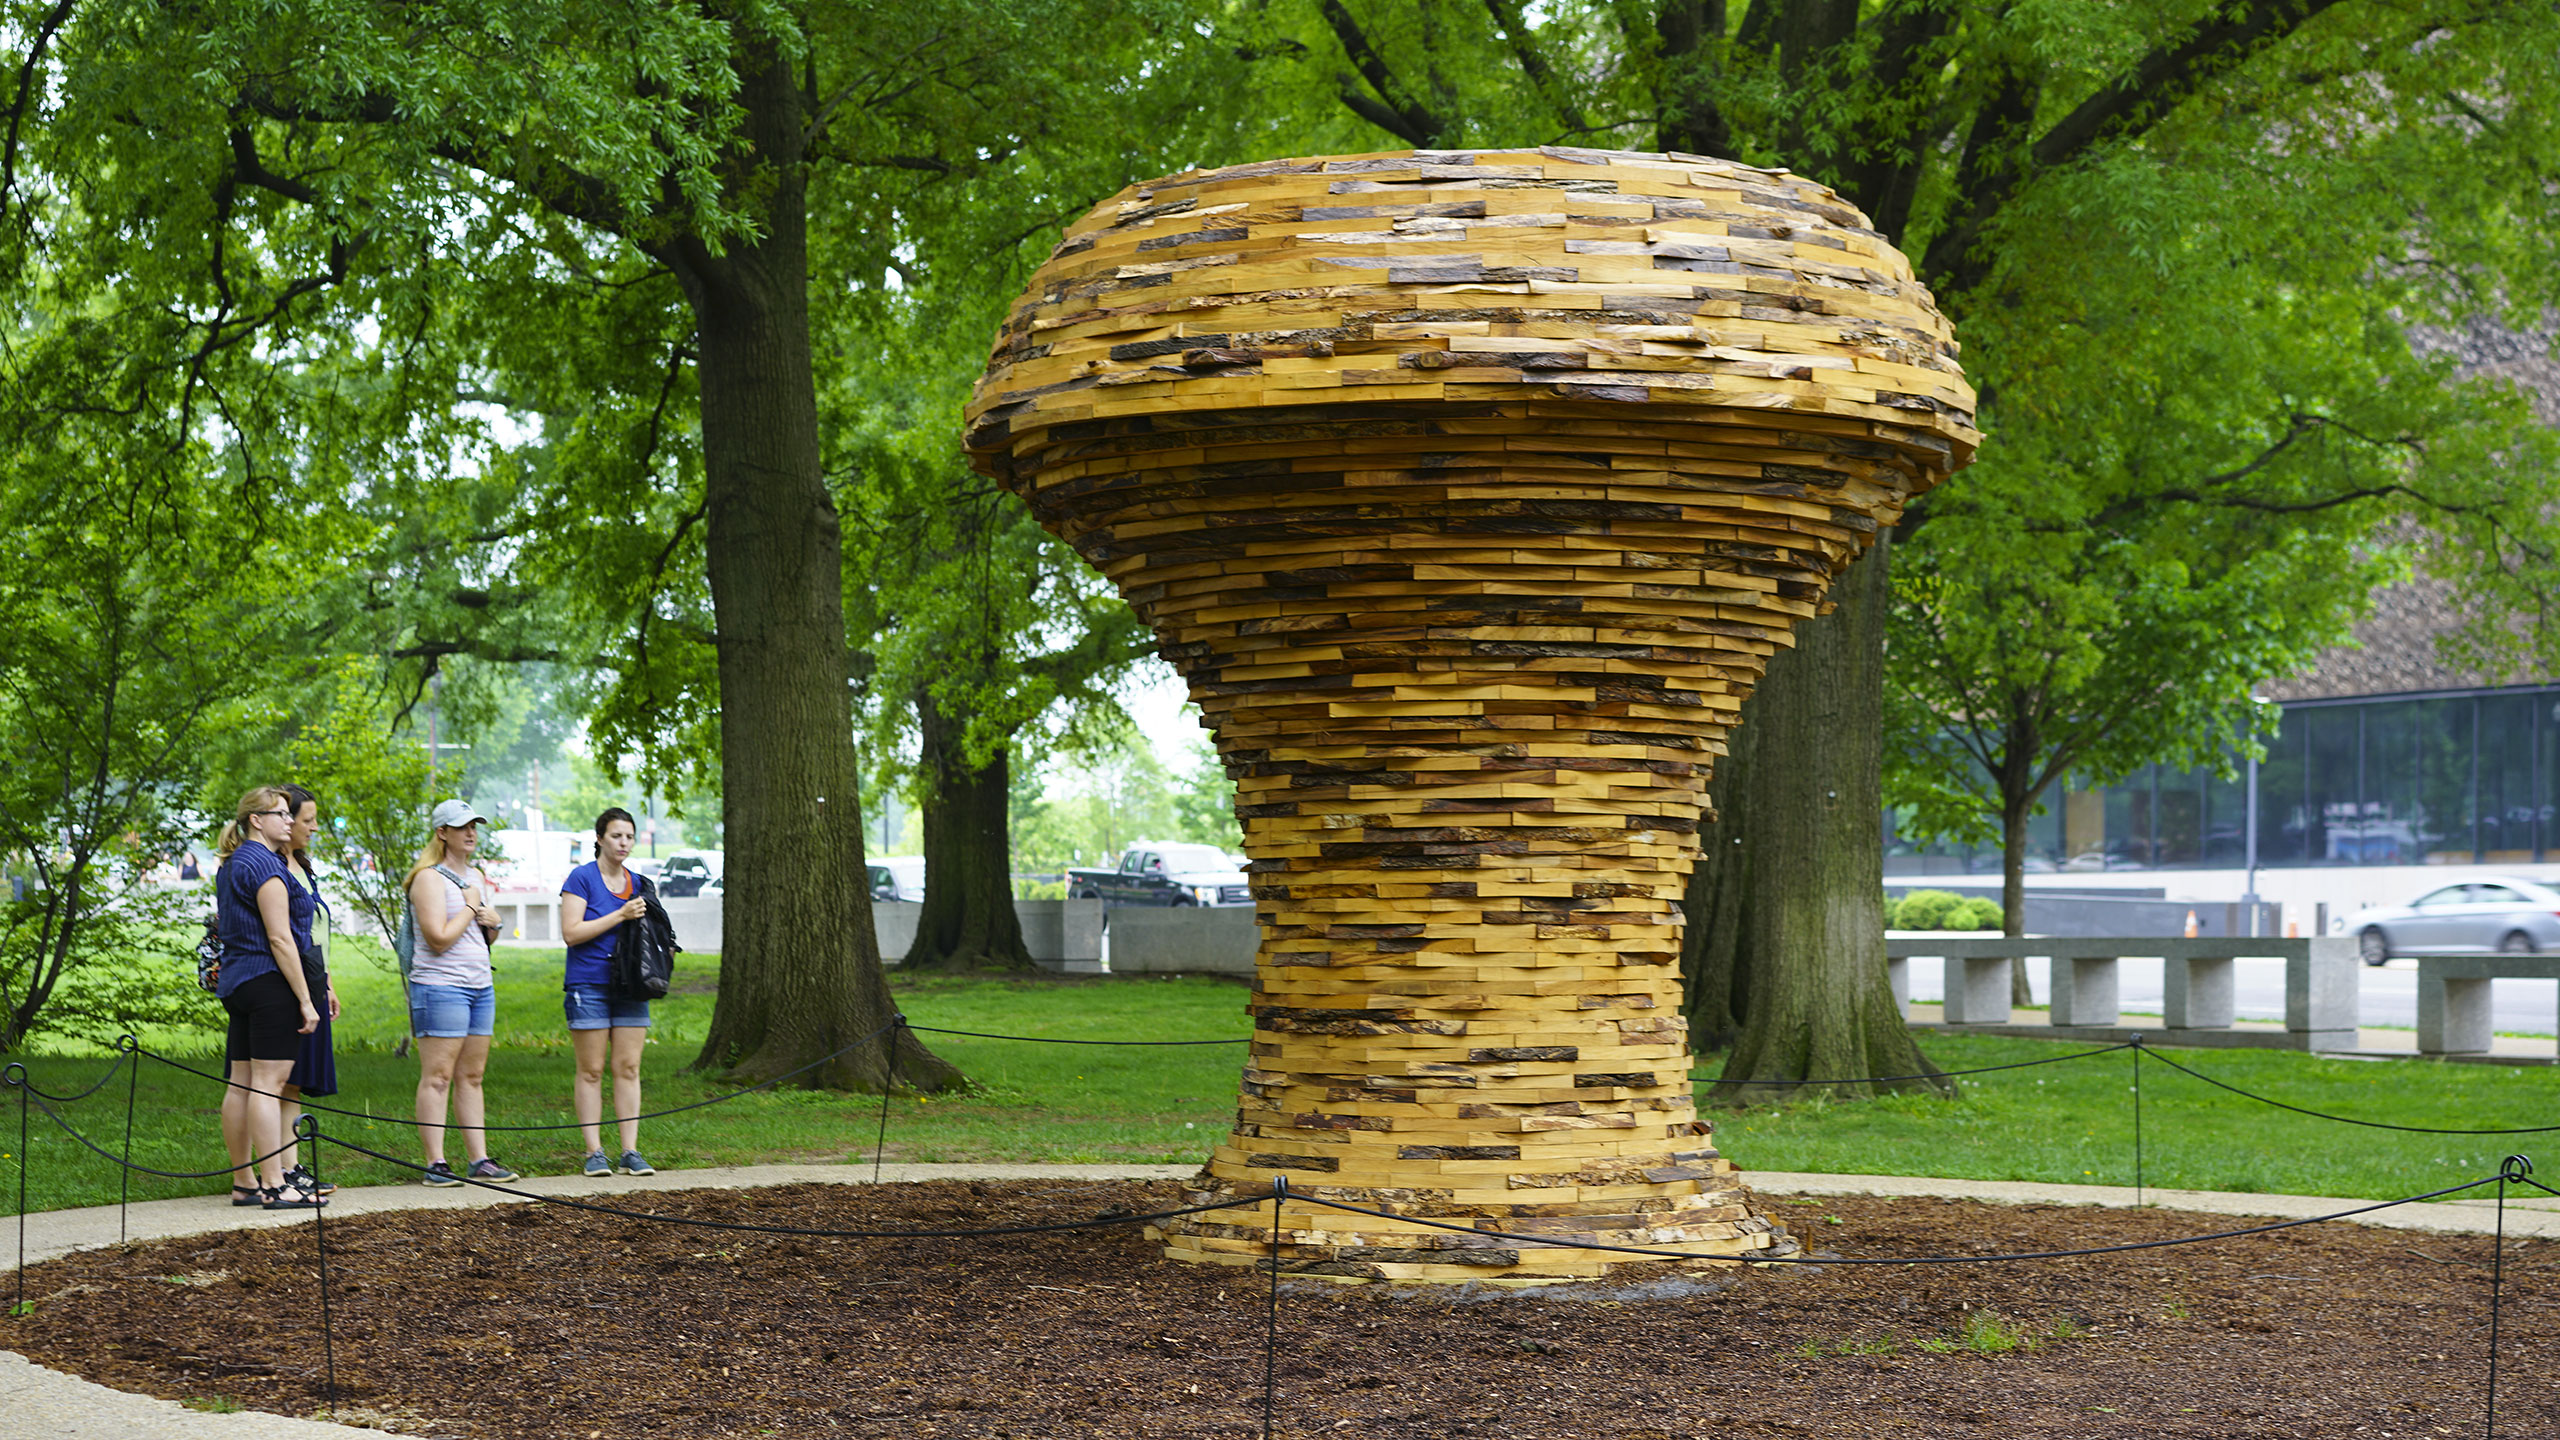 Mushroom Sculpture by Foon Sham outside of the National Museum of American History